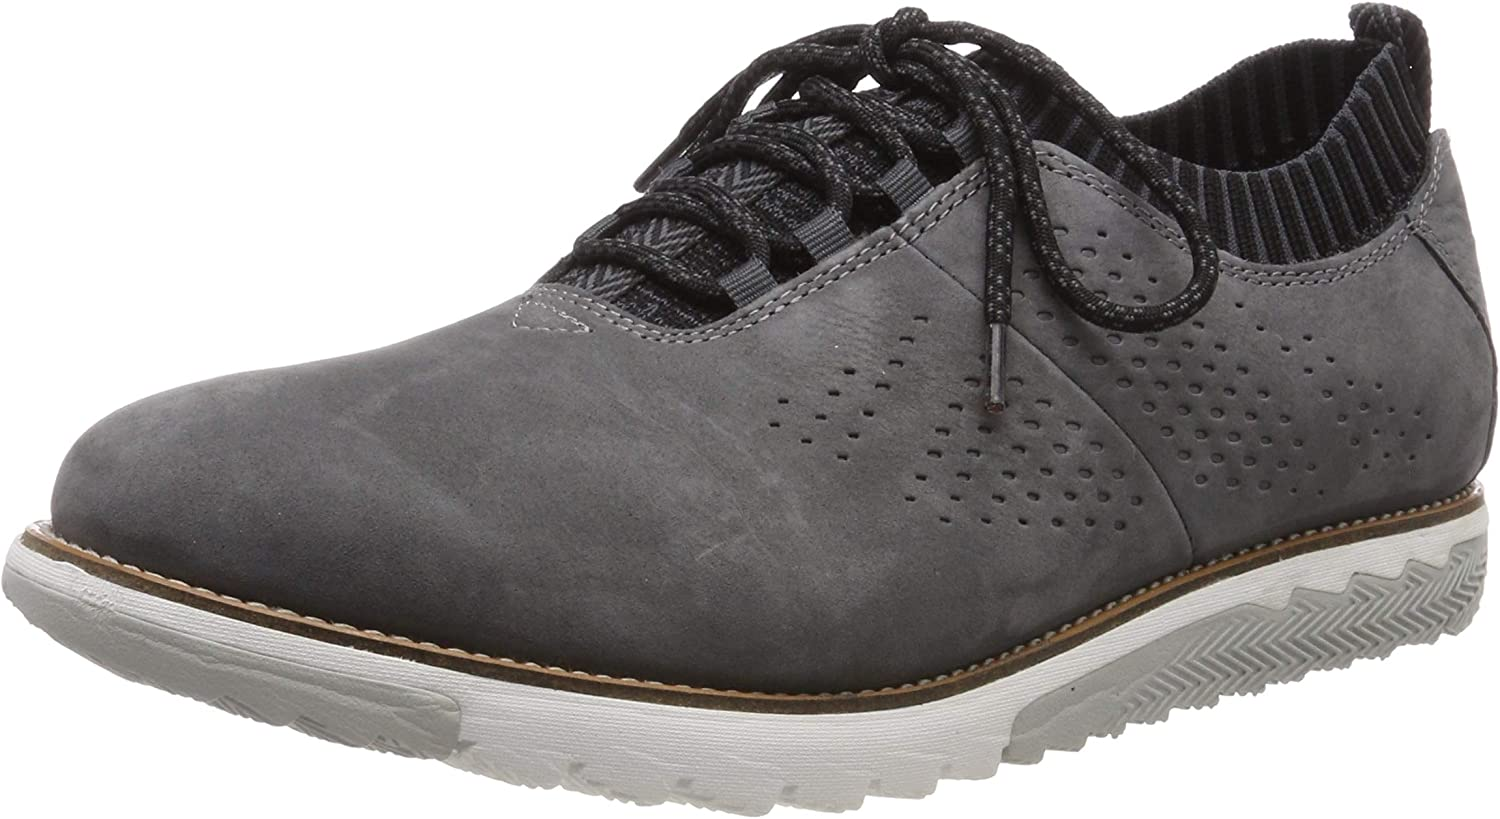 Hush Puppies Ranking TOP19 Men's Oxford Indianapolis Mall Knit Expert